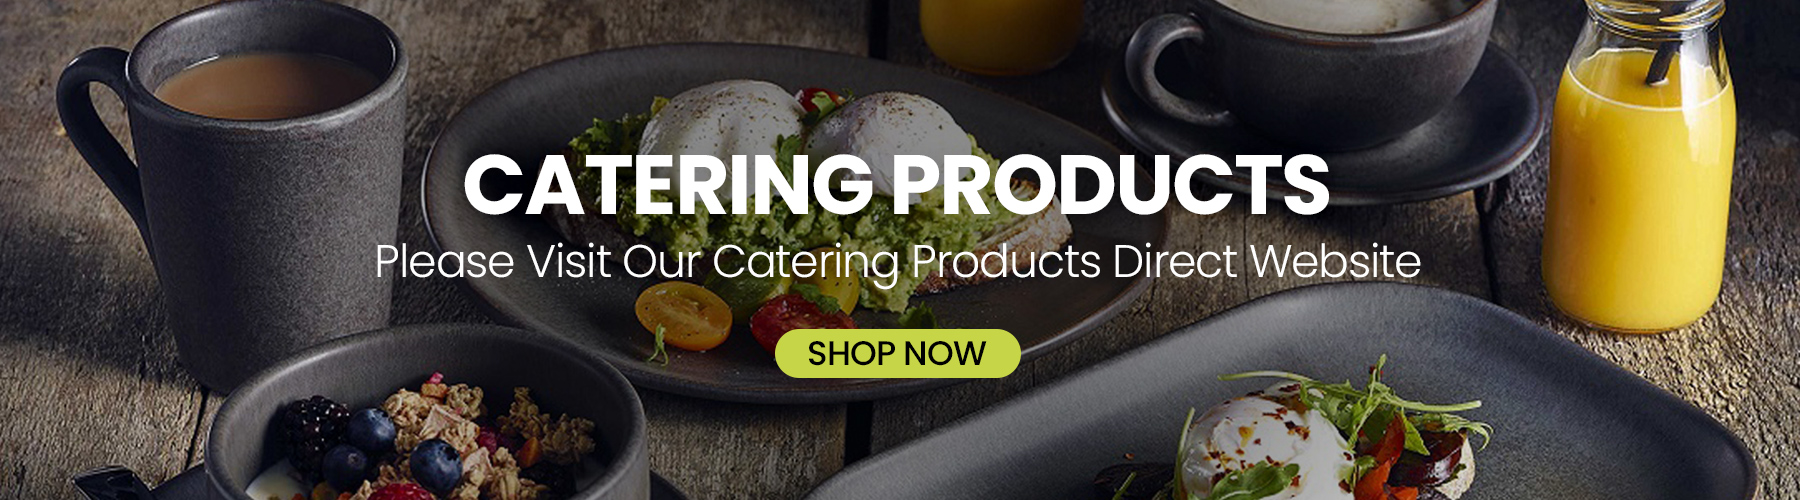 Catering Products for Caterers, Events, Bars or Entertaining at Home. Buy Direct, Save.